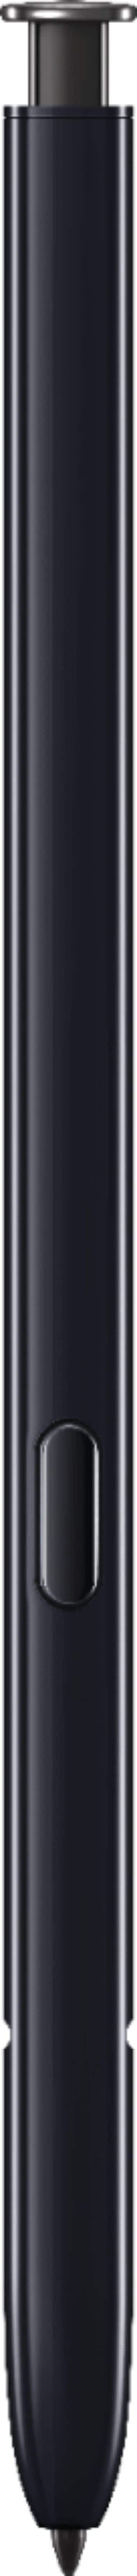 s pen replacement - 25.00 at Bestbuy